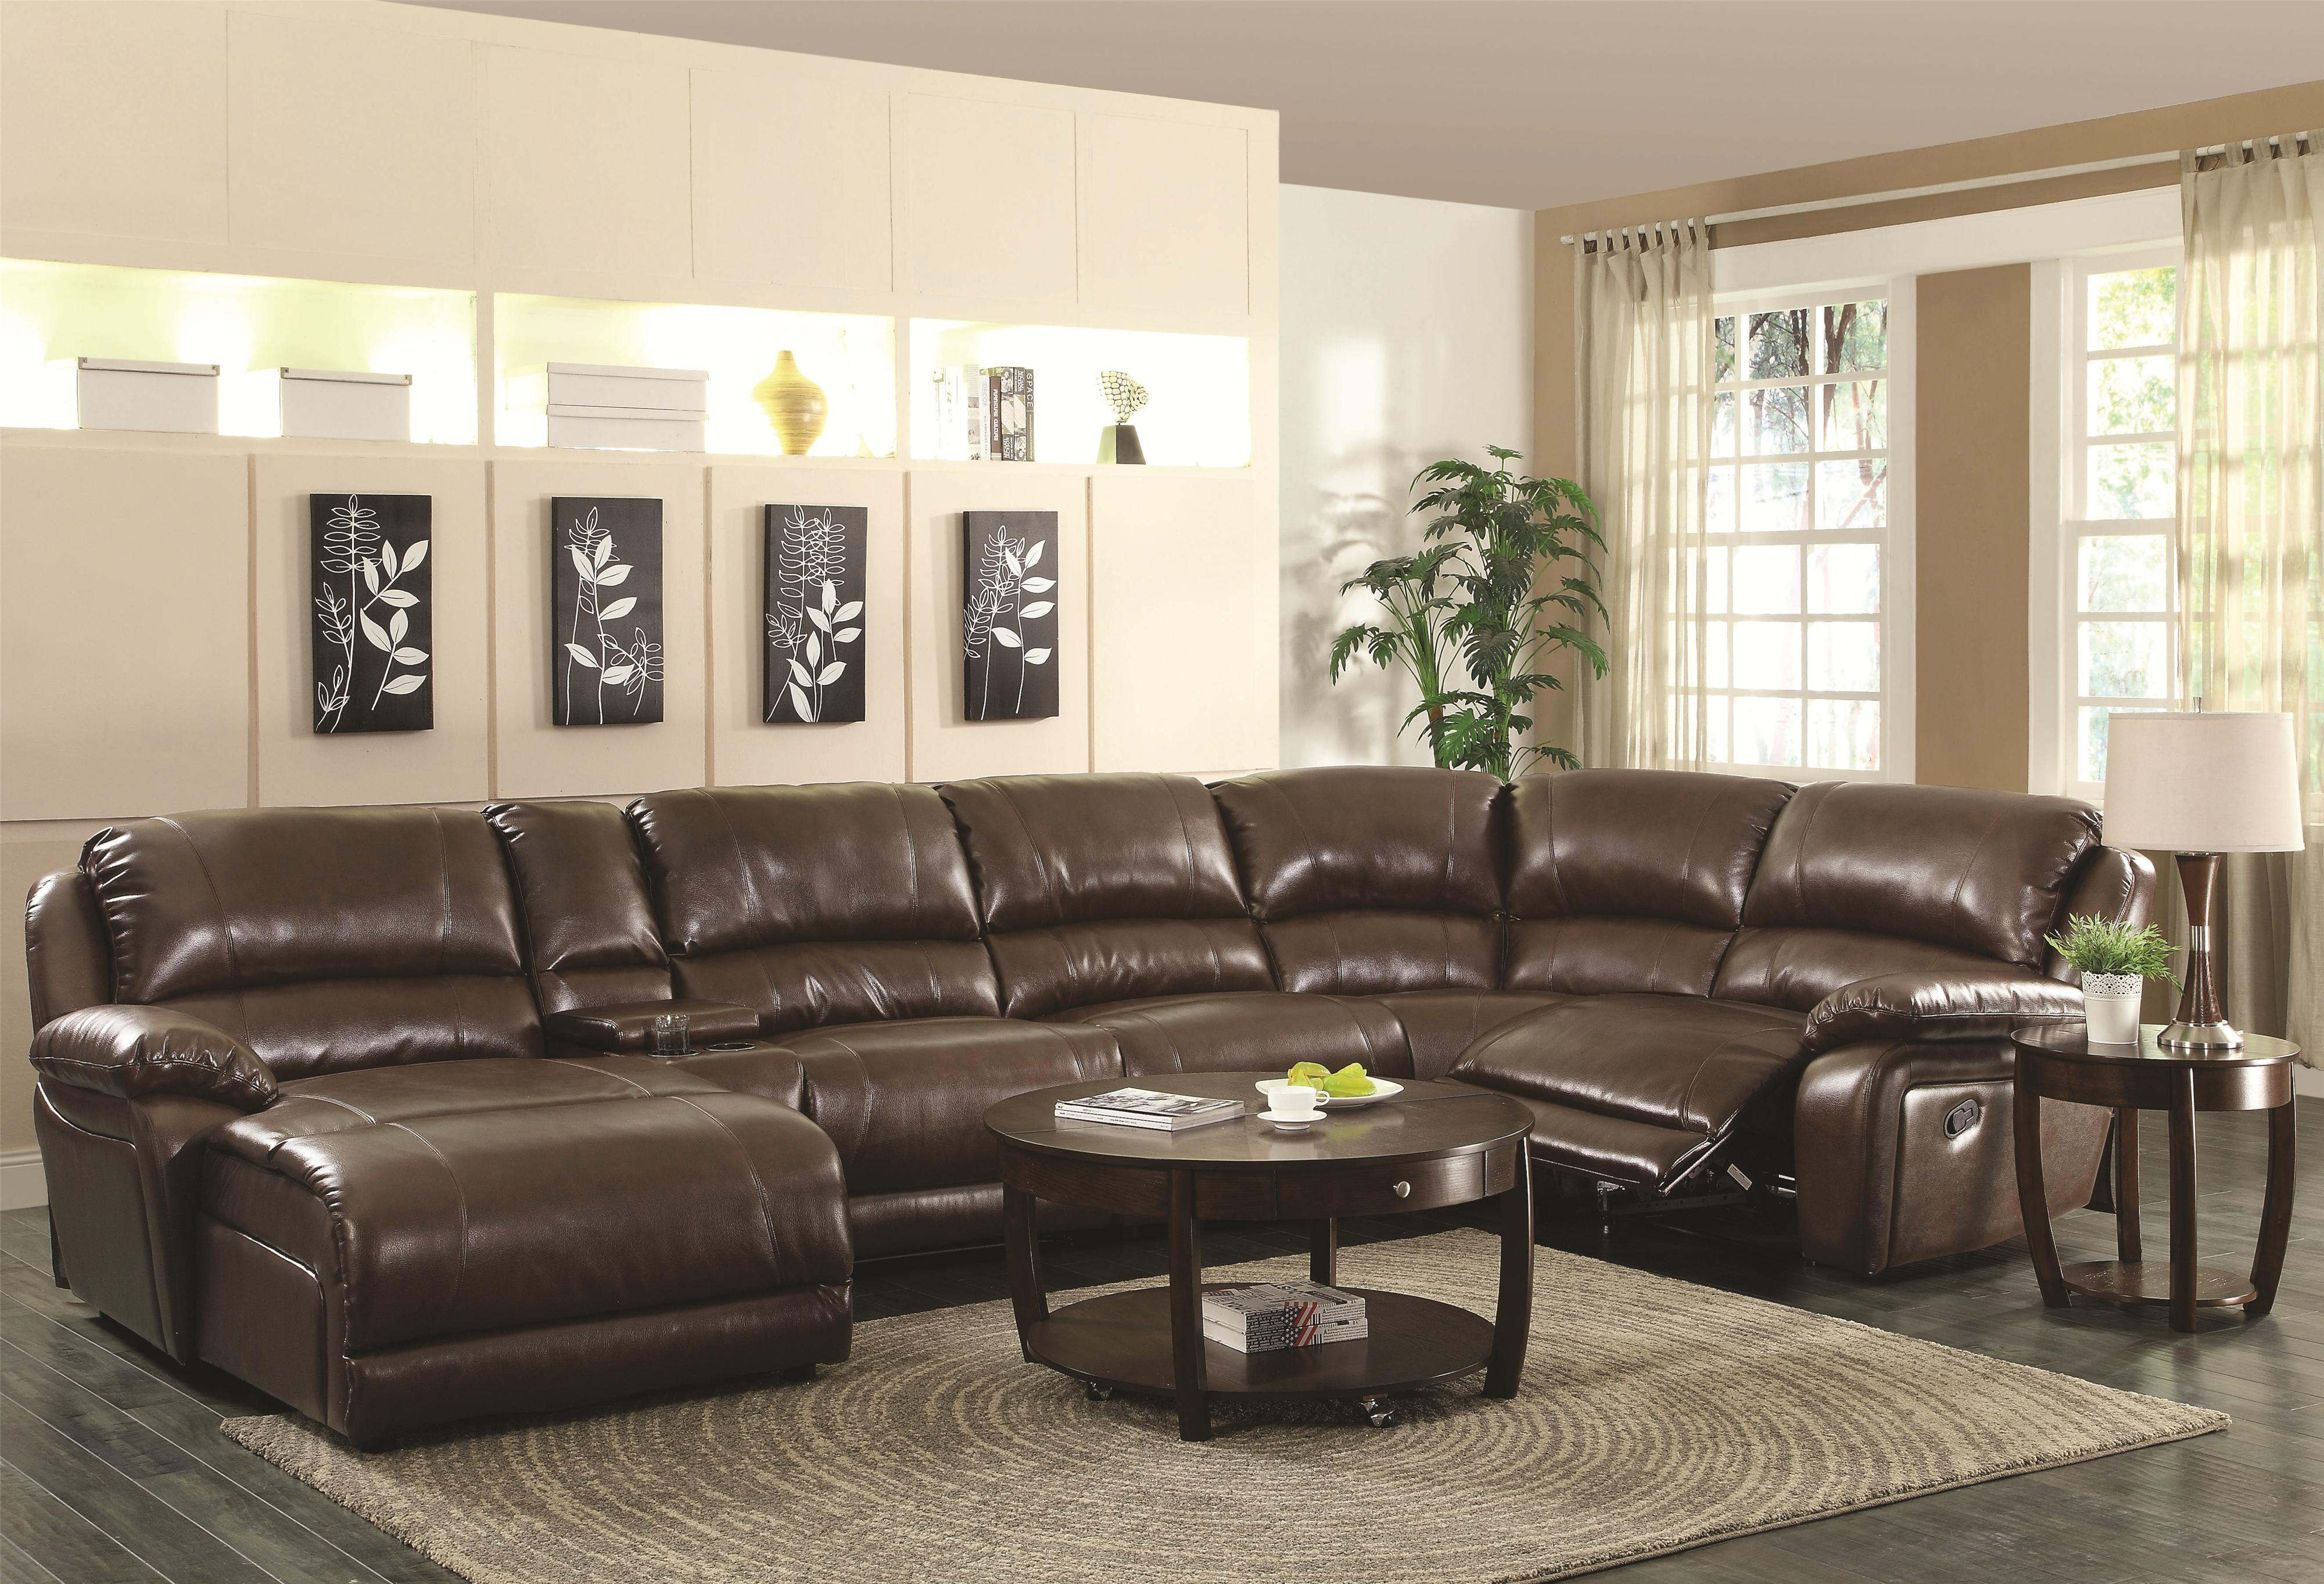 Leather Sectional Sofa Recliner Mackenzie Chestnut 6 Piece Reclining Sectional Sofa With Casual Style By Coaster At Dunk Bright Furniture